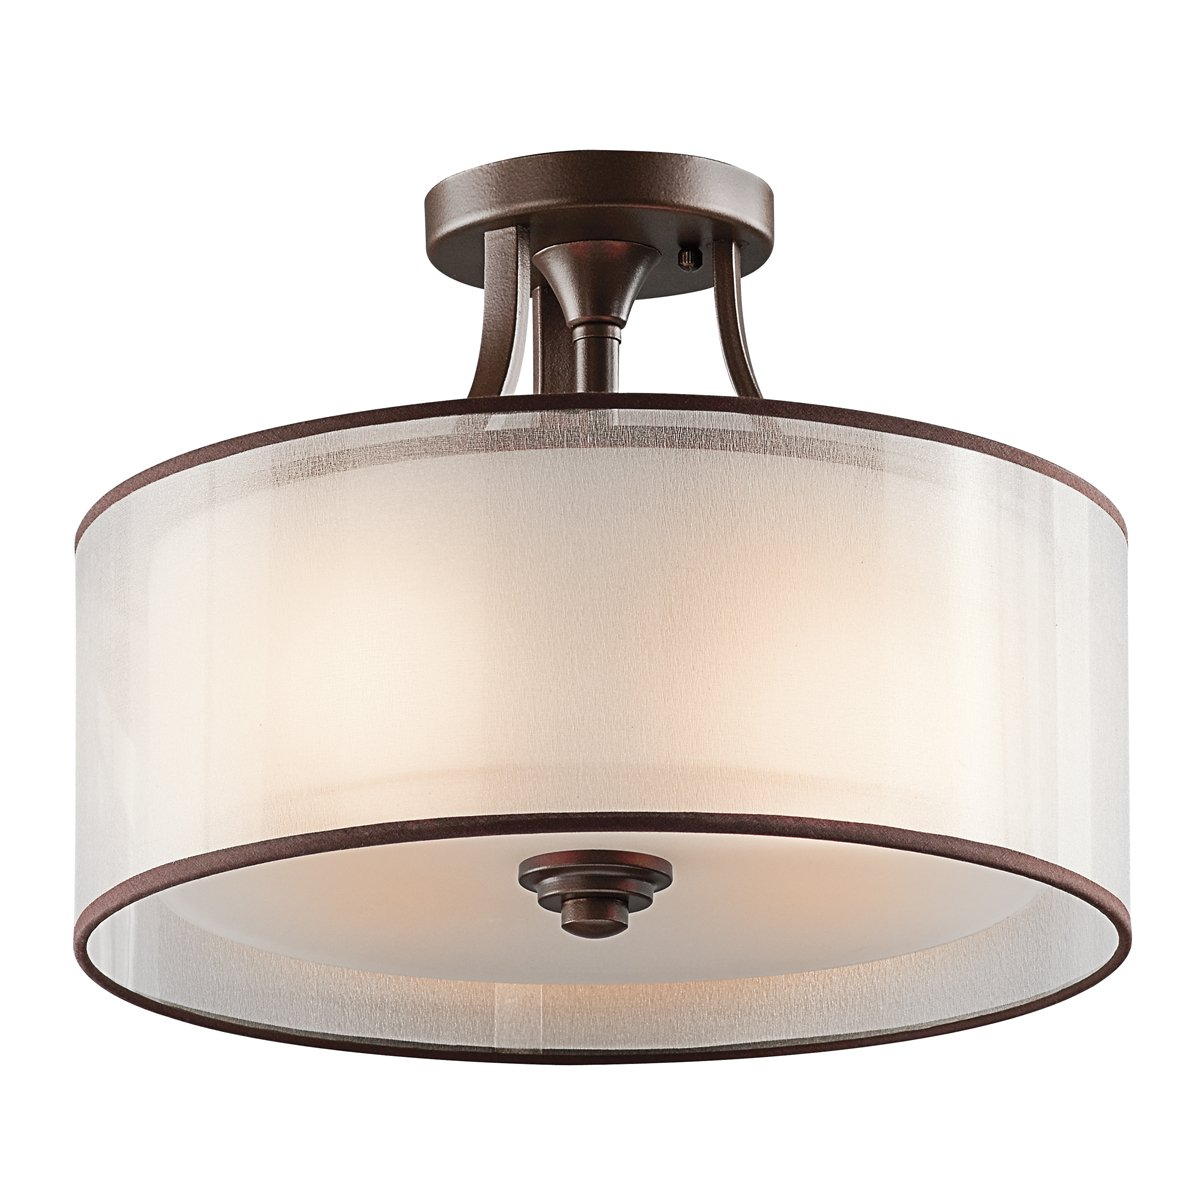 Semi Flush Mount Kitchen Lighting Kichler Lighting 42386miz Lacey Semi Flush Ceiling Light Mission